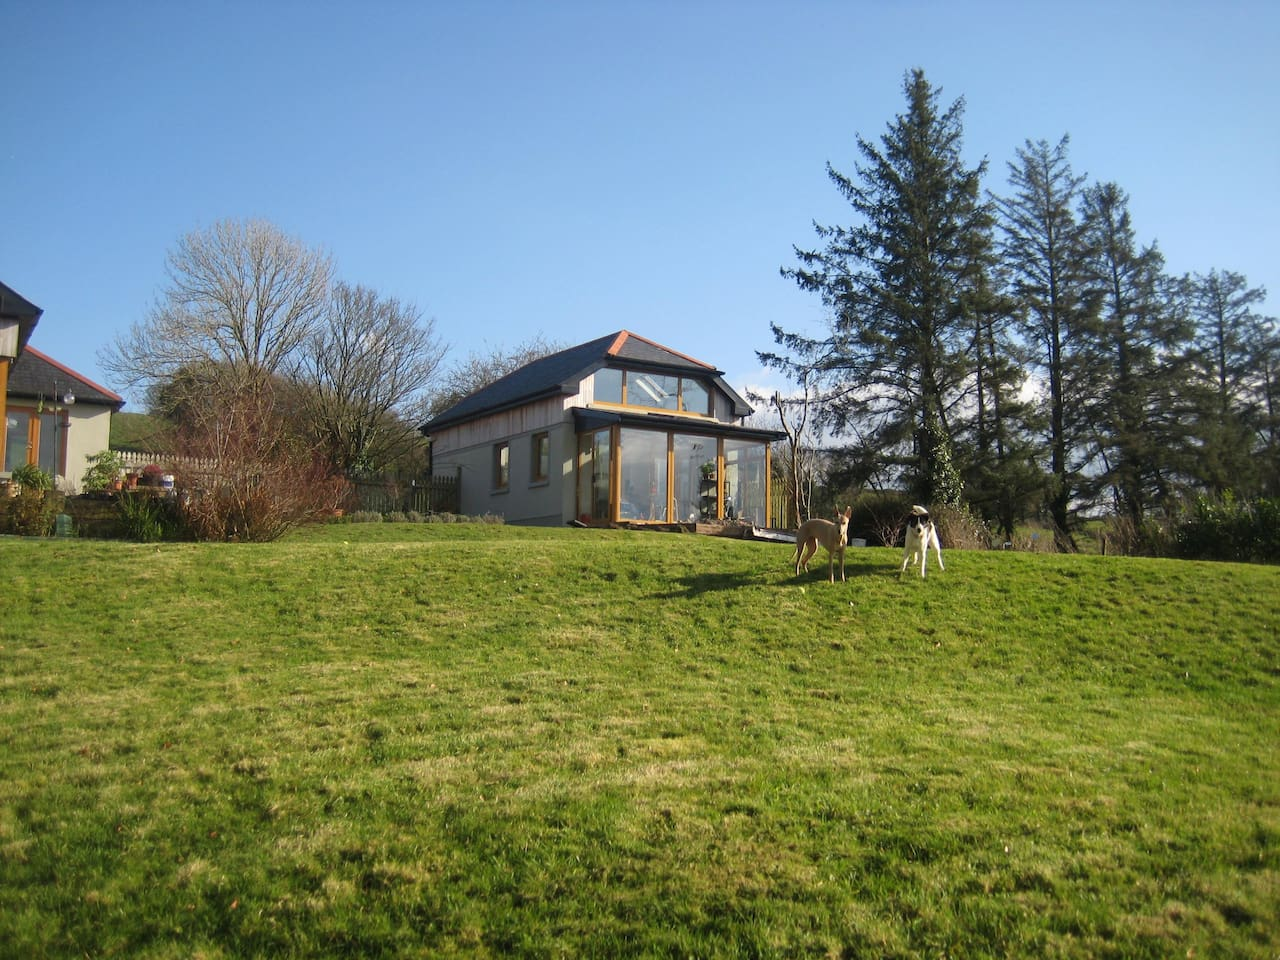 Main house and dogs